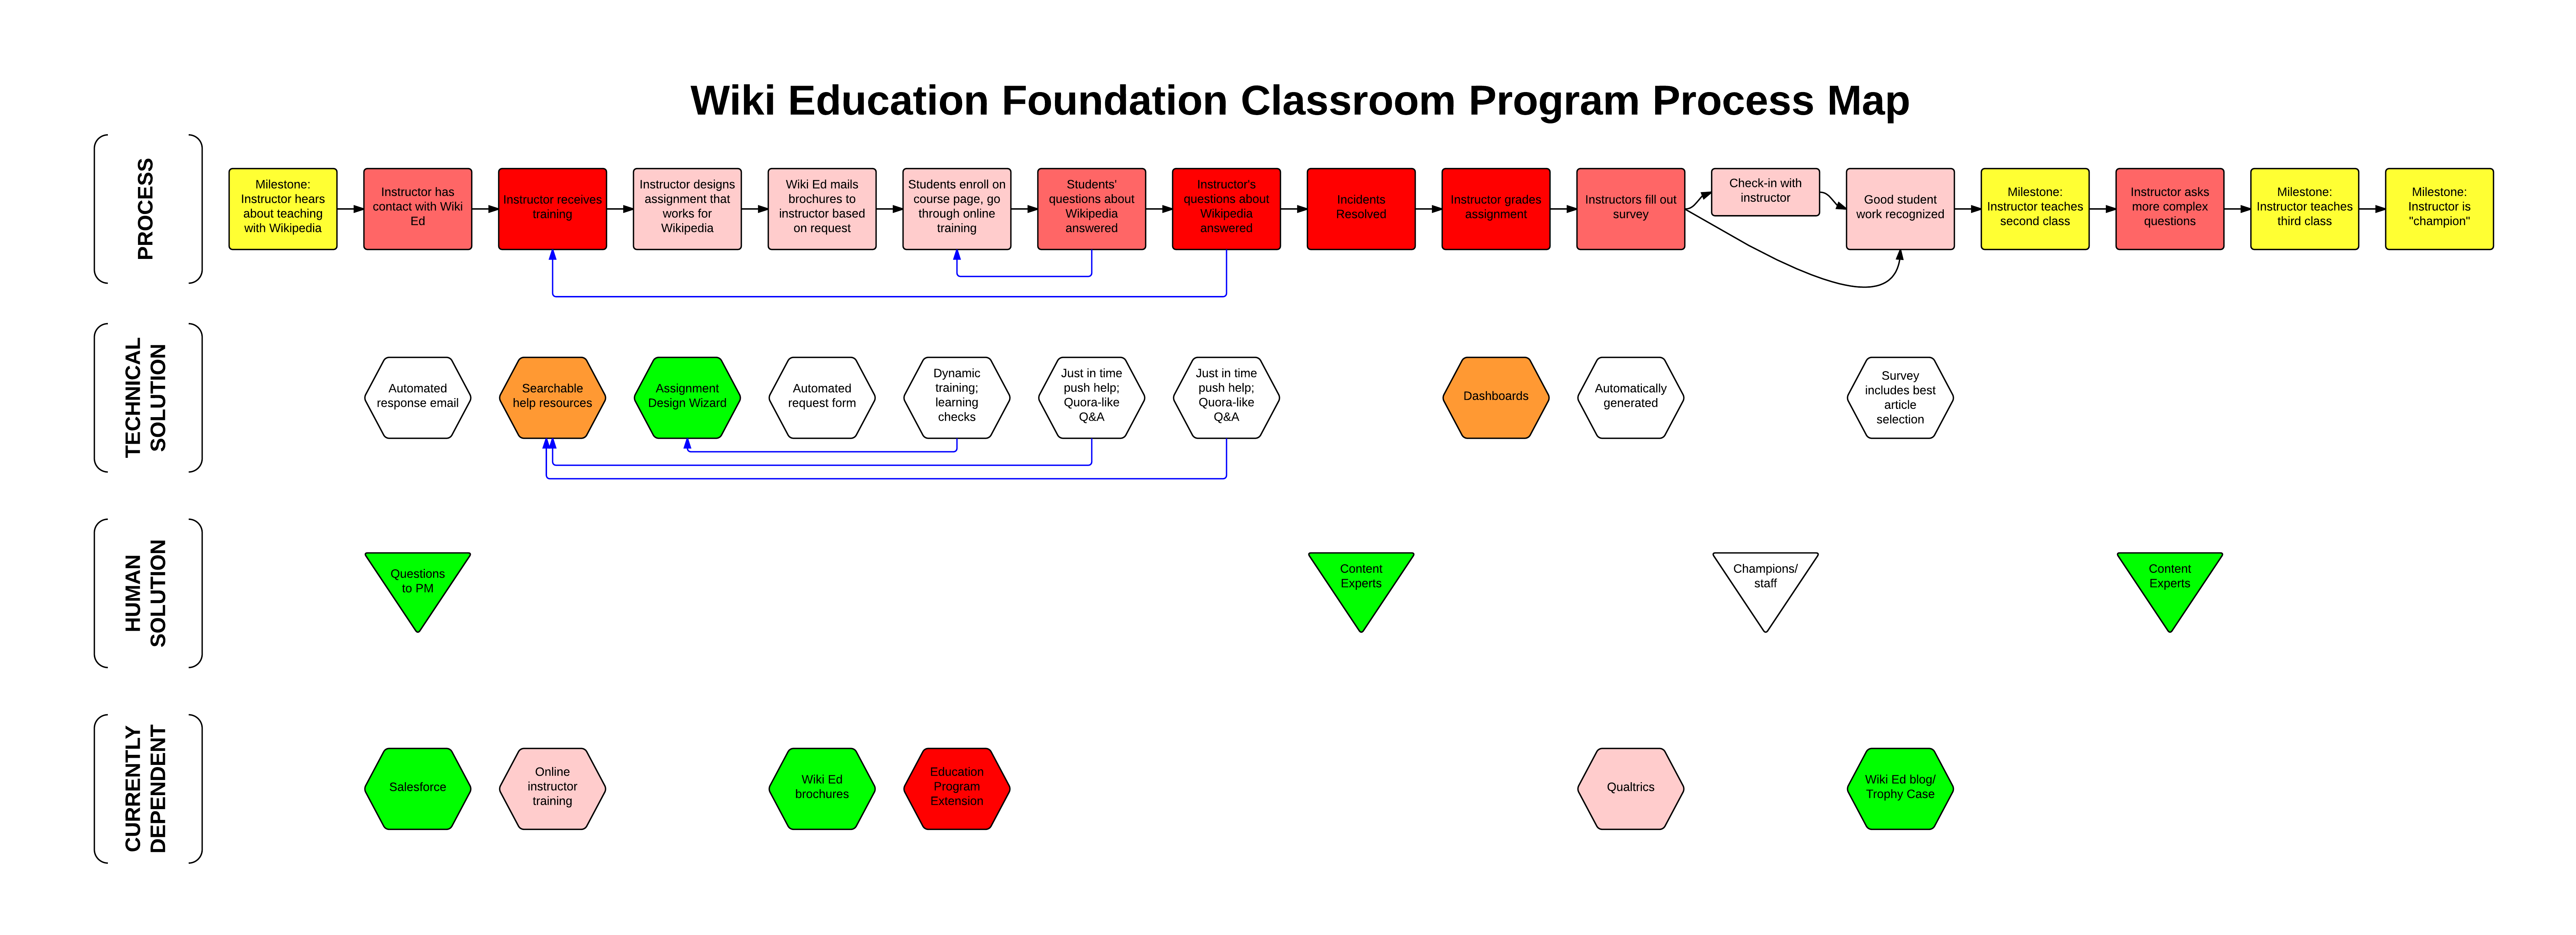 file wiki education classroom program process map in 2014 png